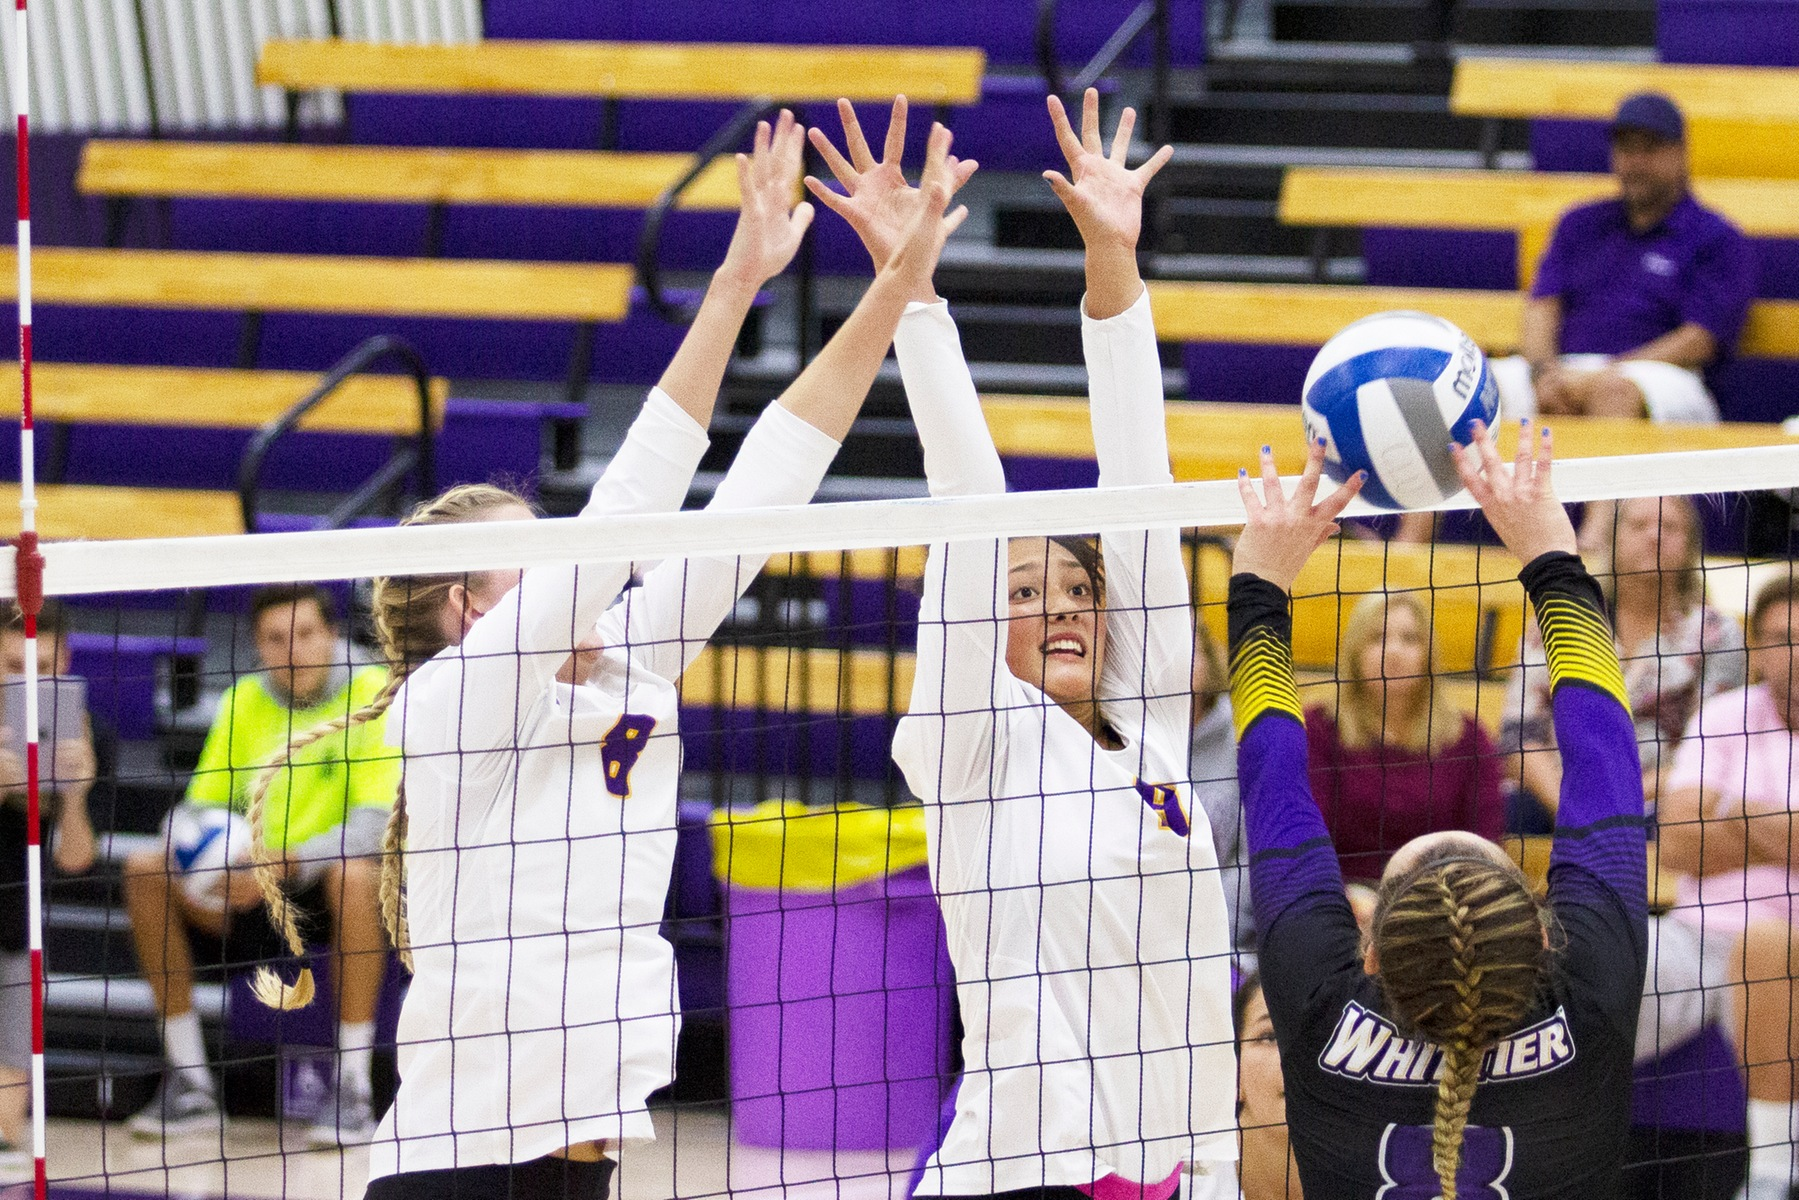 Regals Sweep Beavers; Given, Haddad Lead the Way With 8 Kills Each